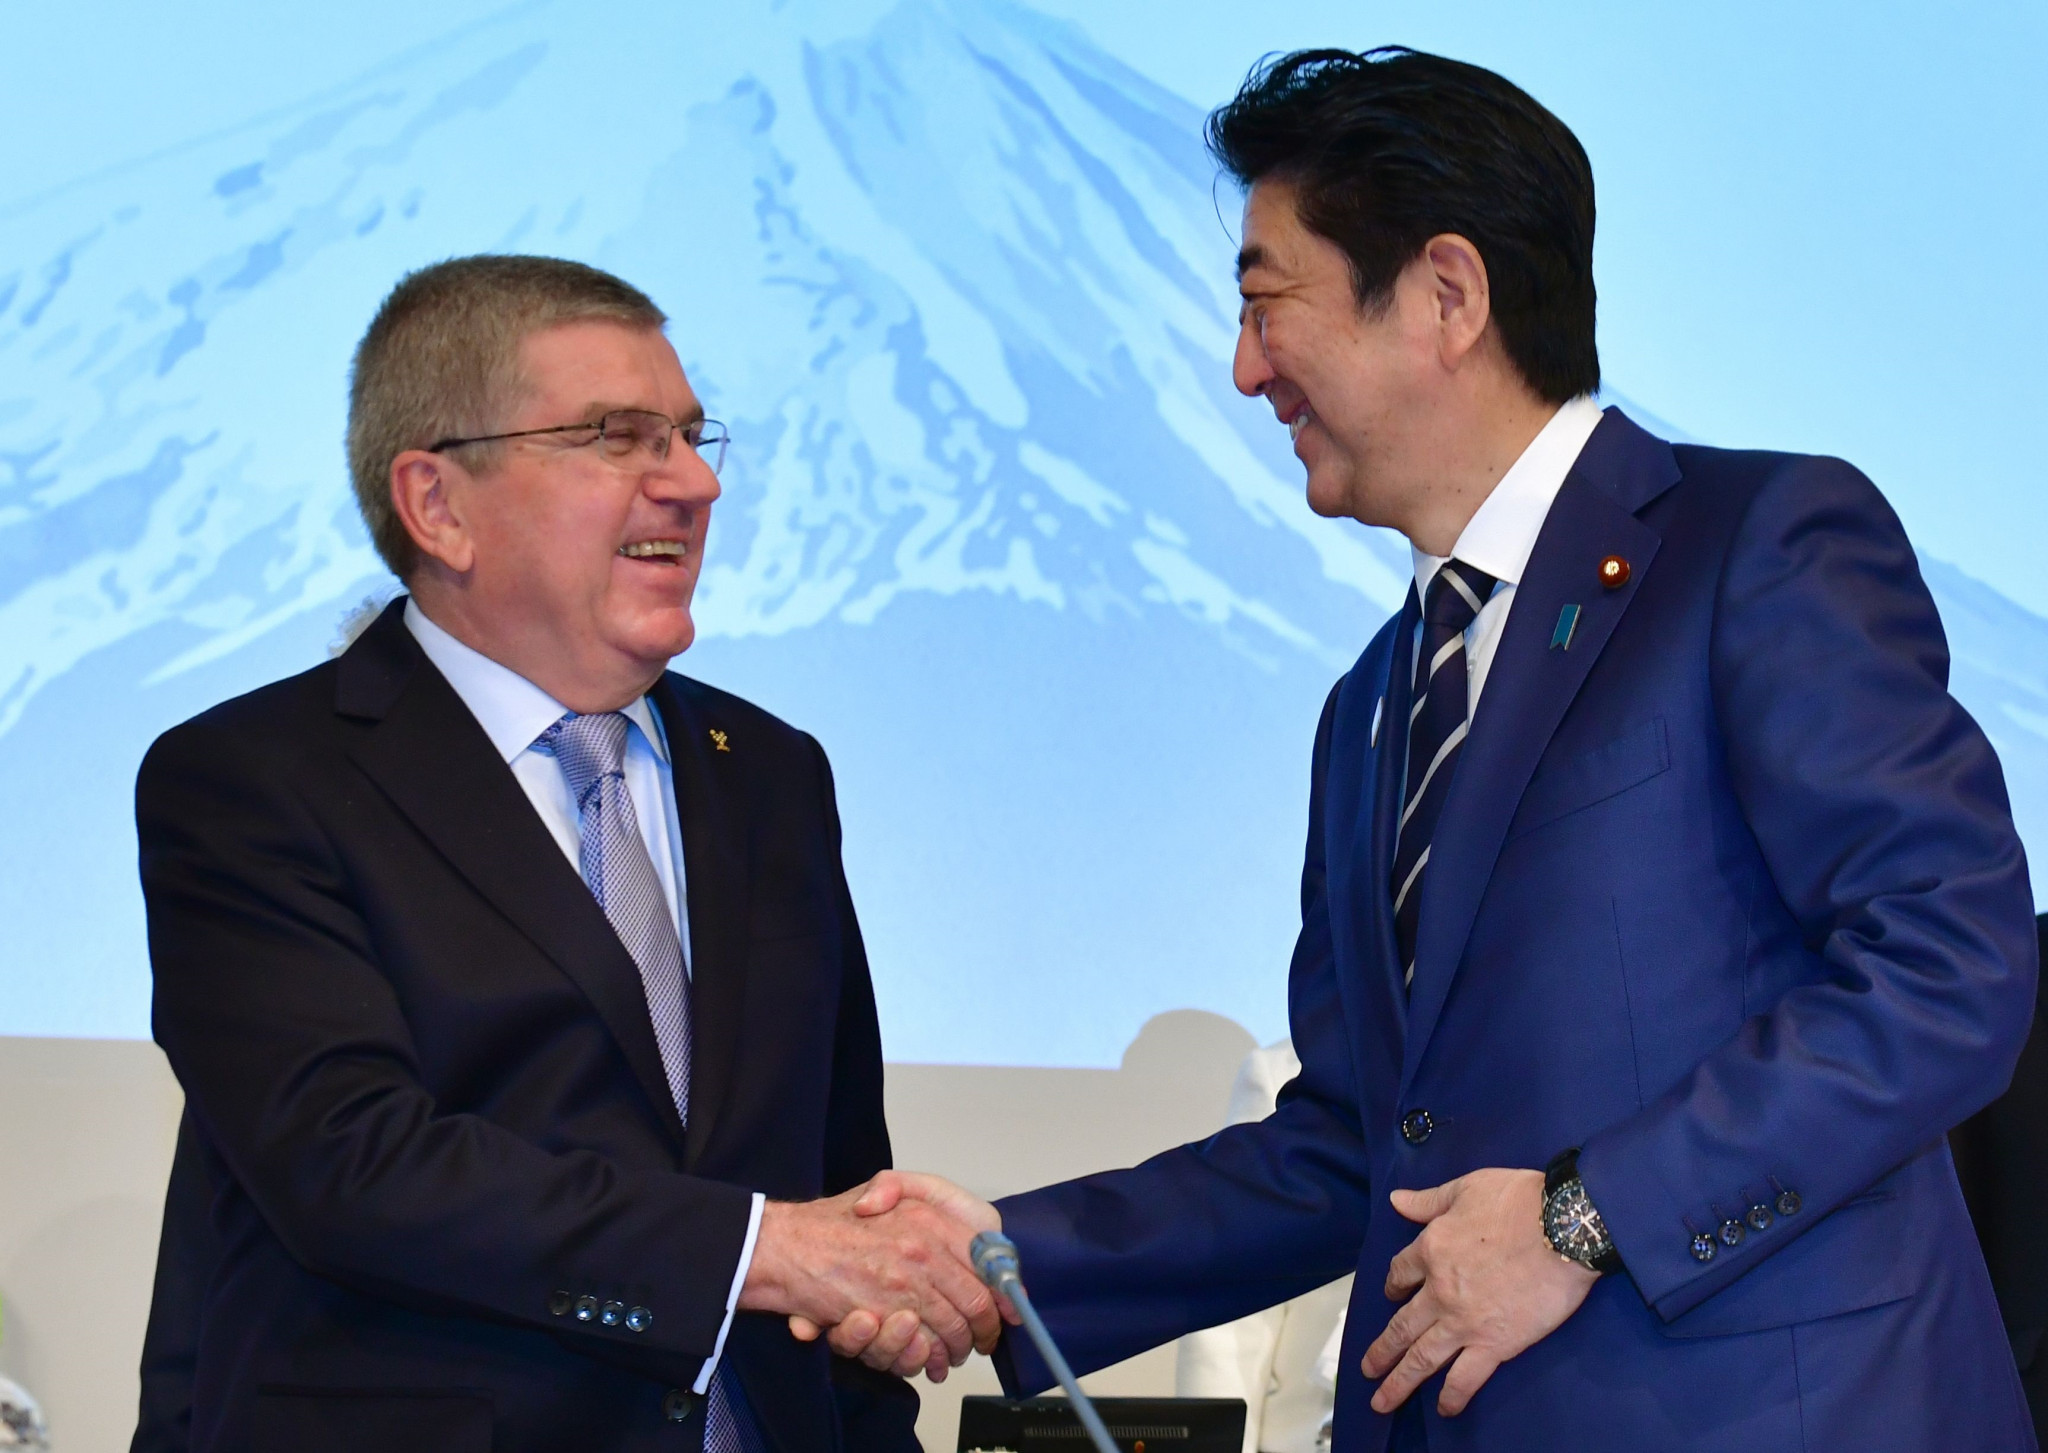 Japanese Prime Minister Shinzō Abe and IOC President Thomas Bach have agreed to a one-year postponement of Tokyo 2020 ©Getty Images